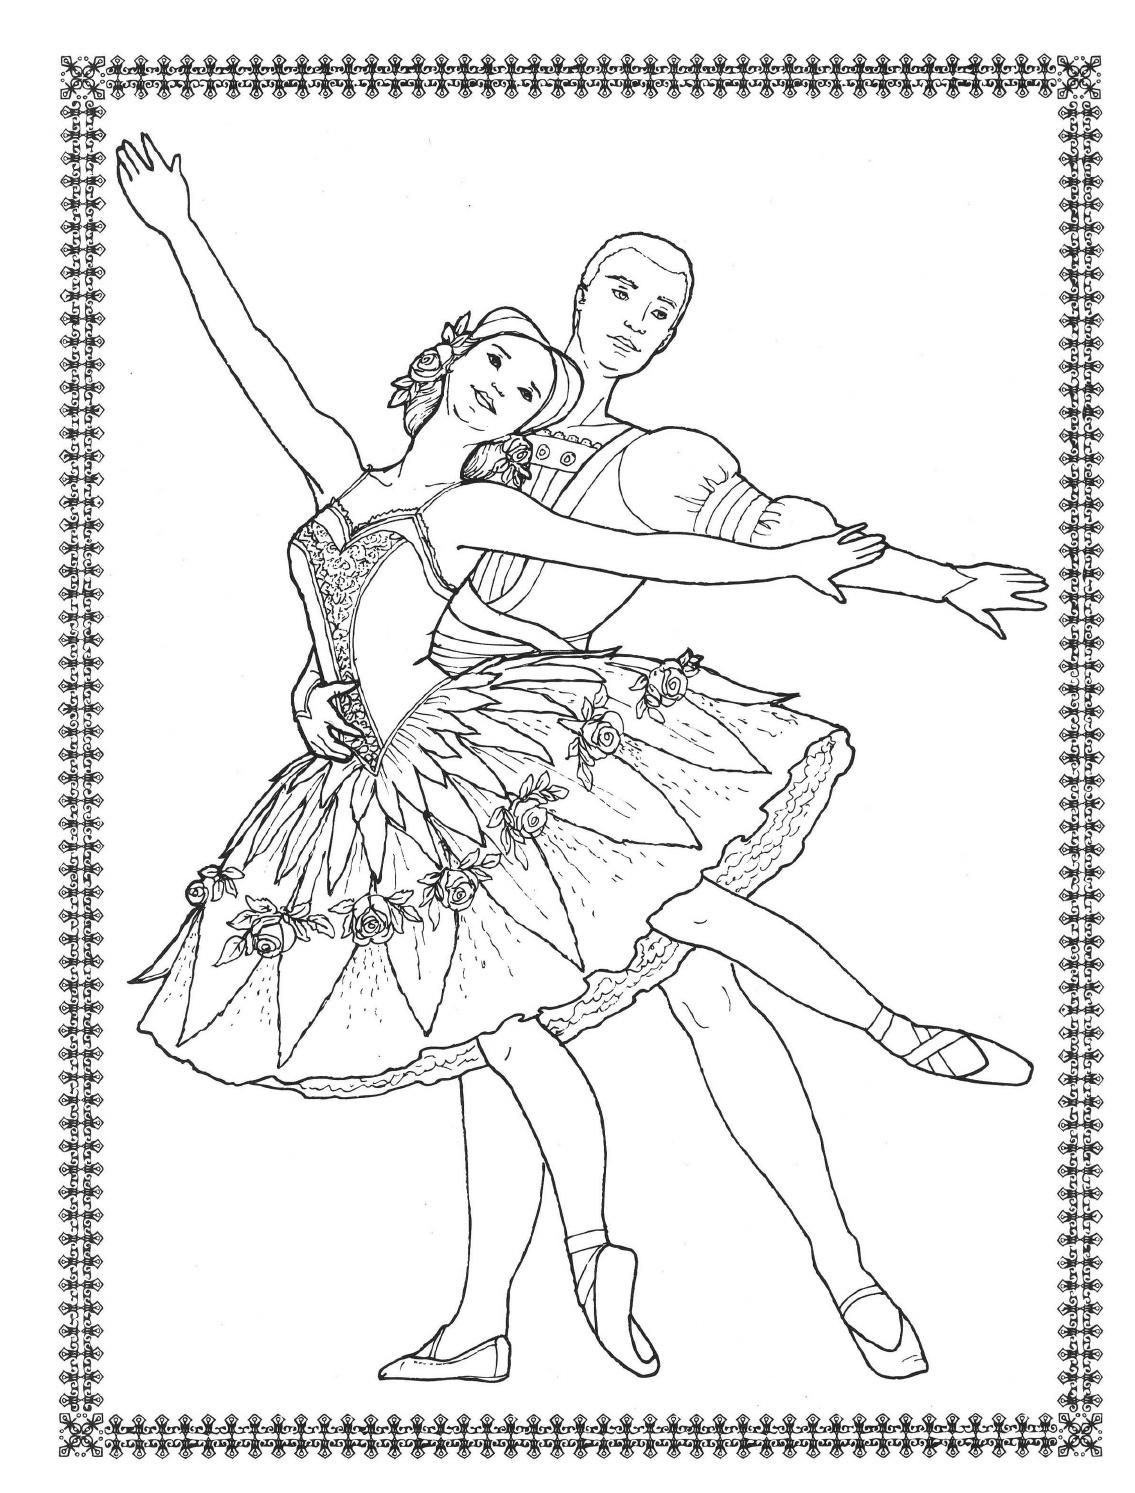 Dancers Coloring Book Costumes For Coloring Coloring Books Dance Coloring Pages Book Costumes